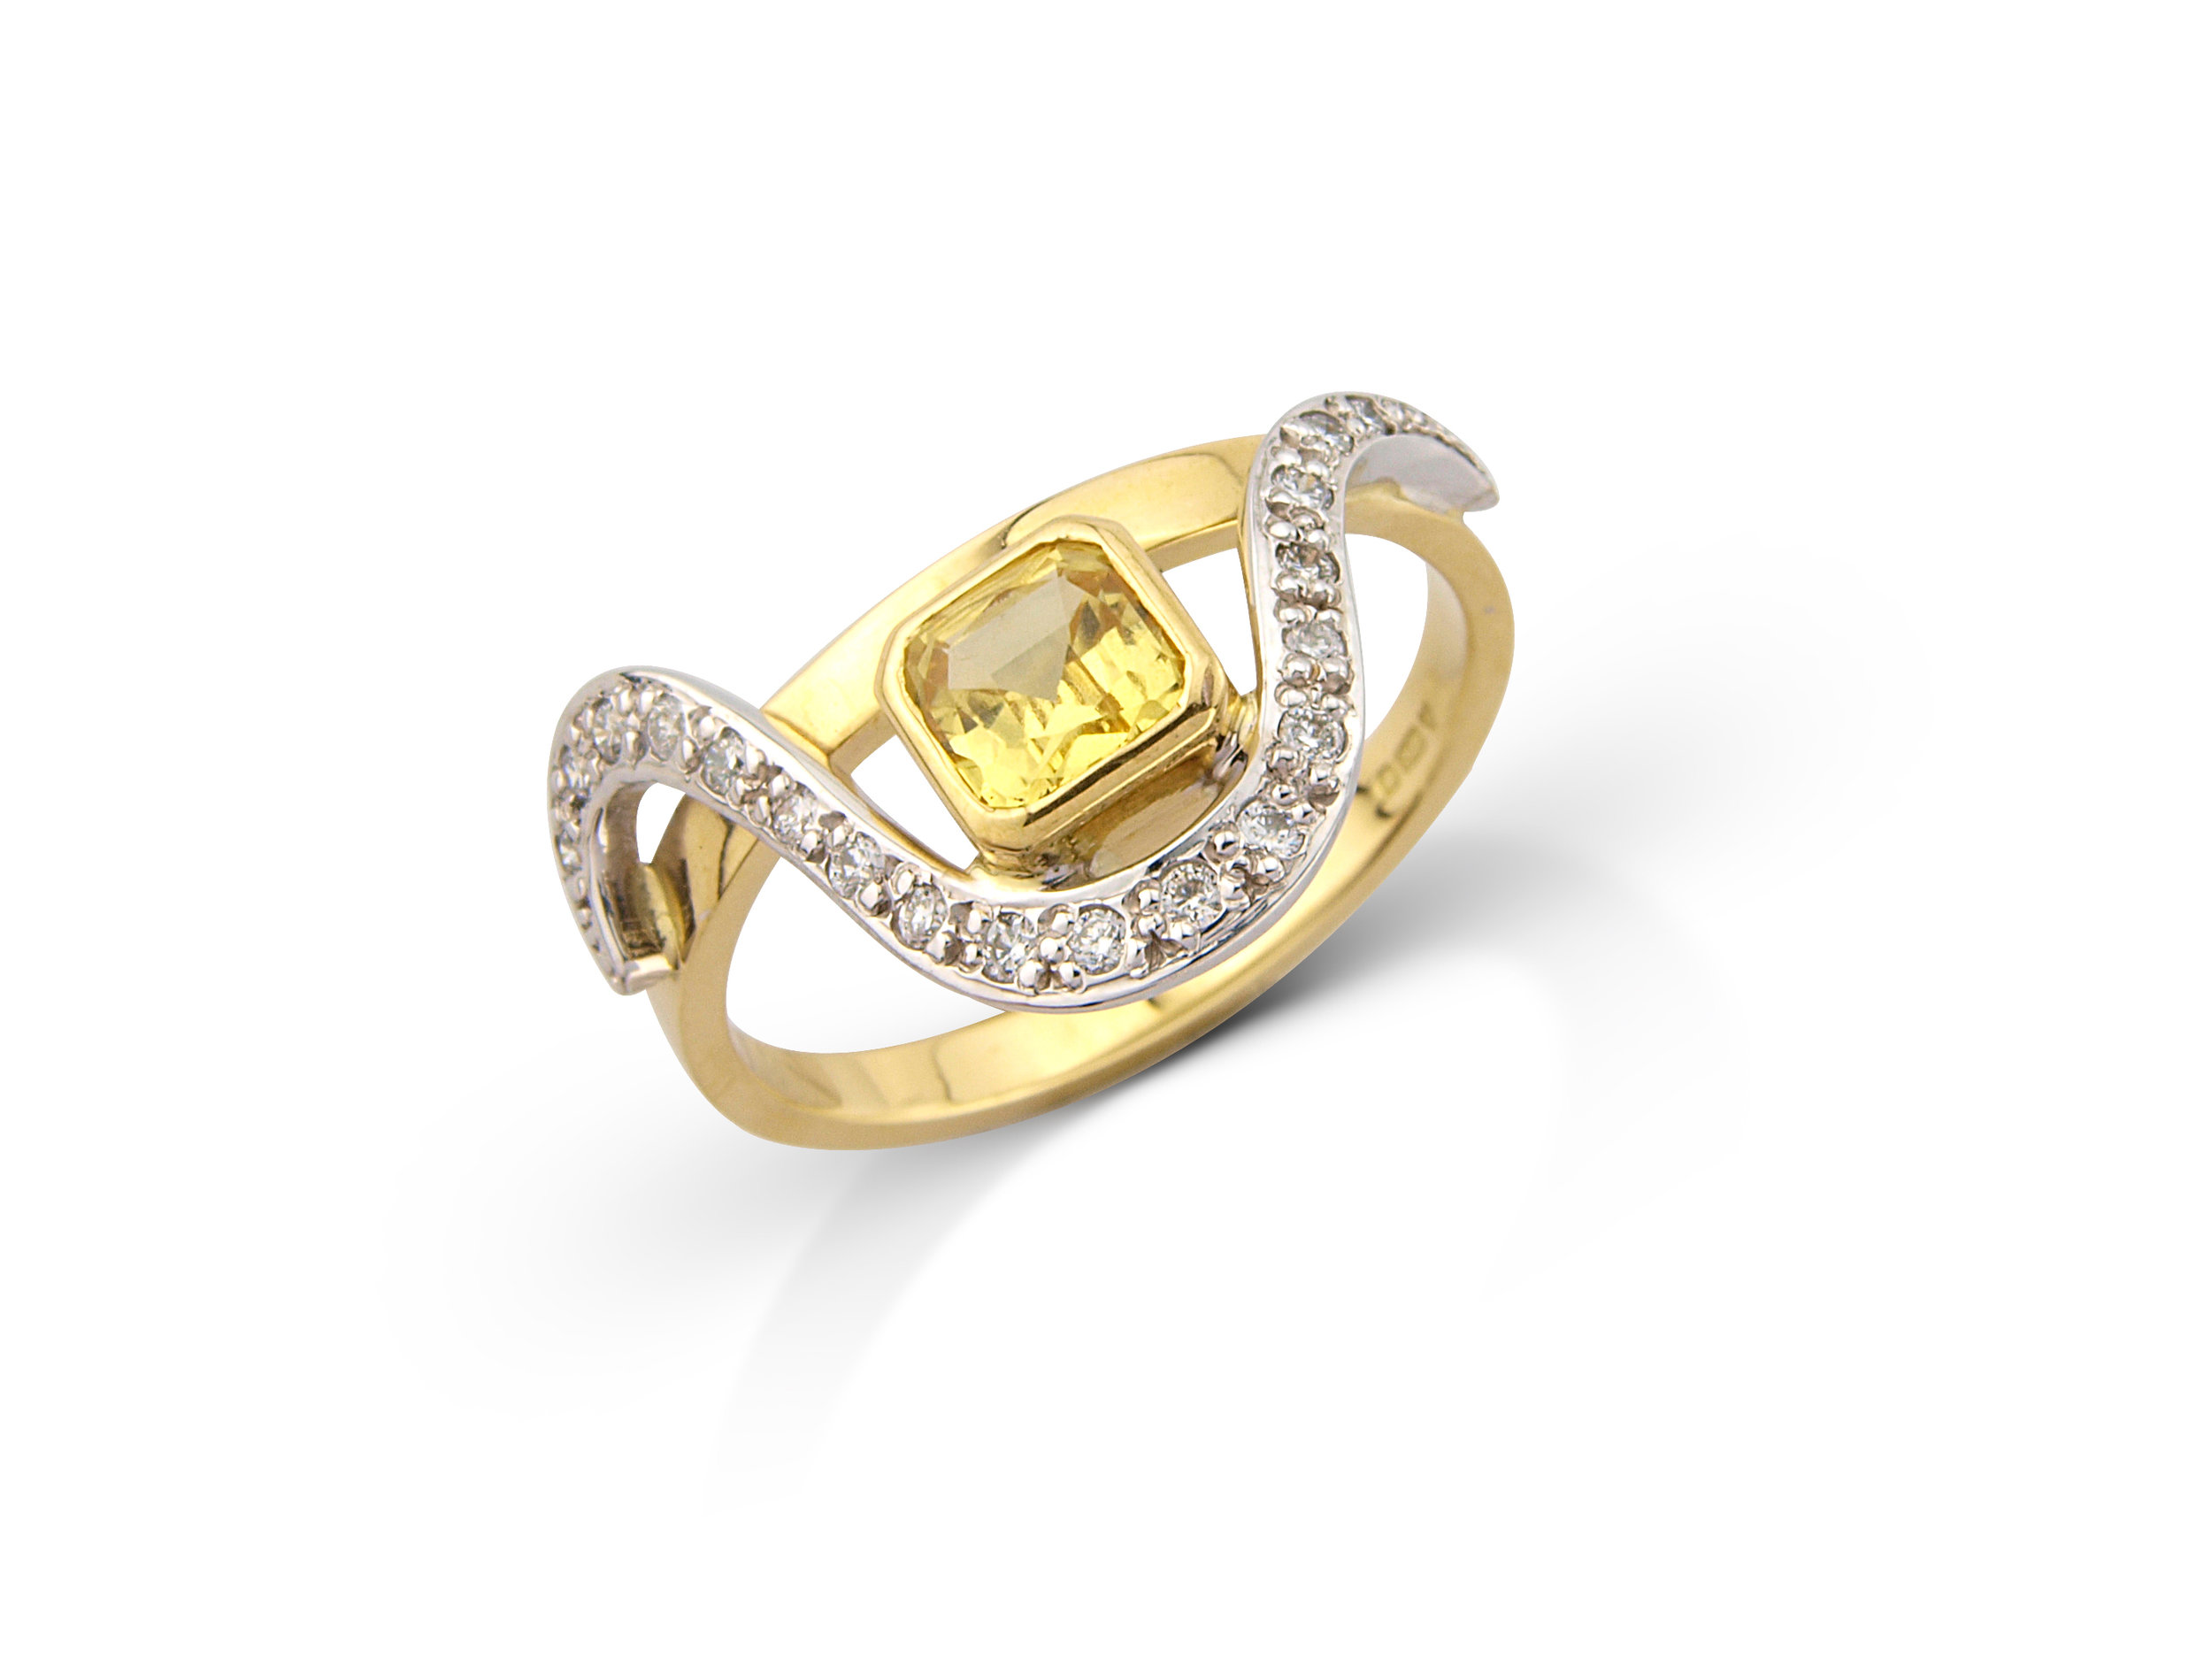 Yellow sapphire dress ring mounted in 18ct yellow gold and set with diamonds in white gold.